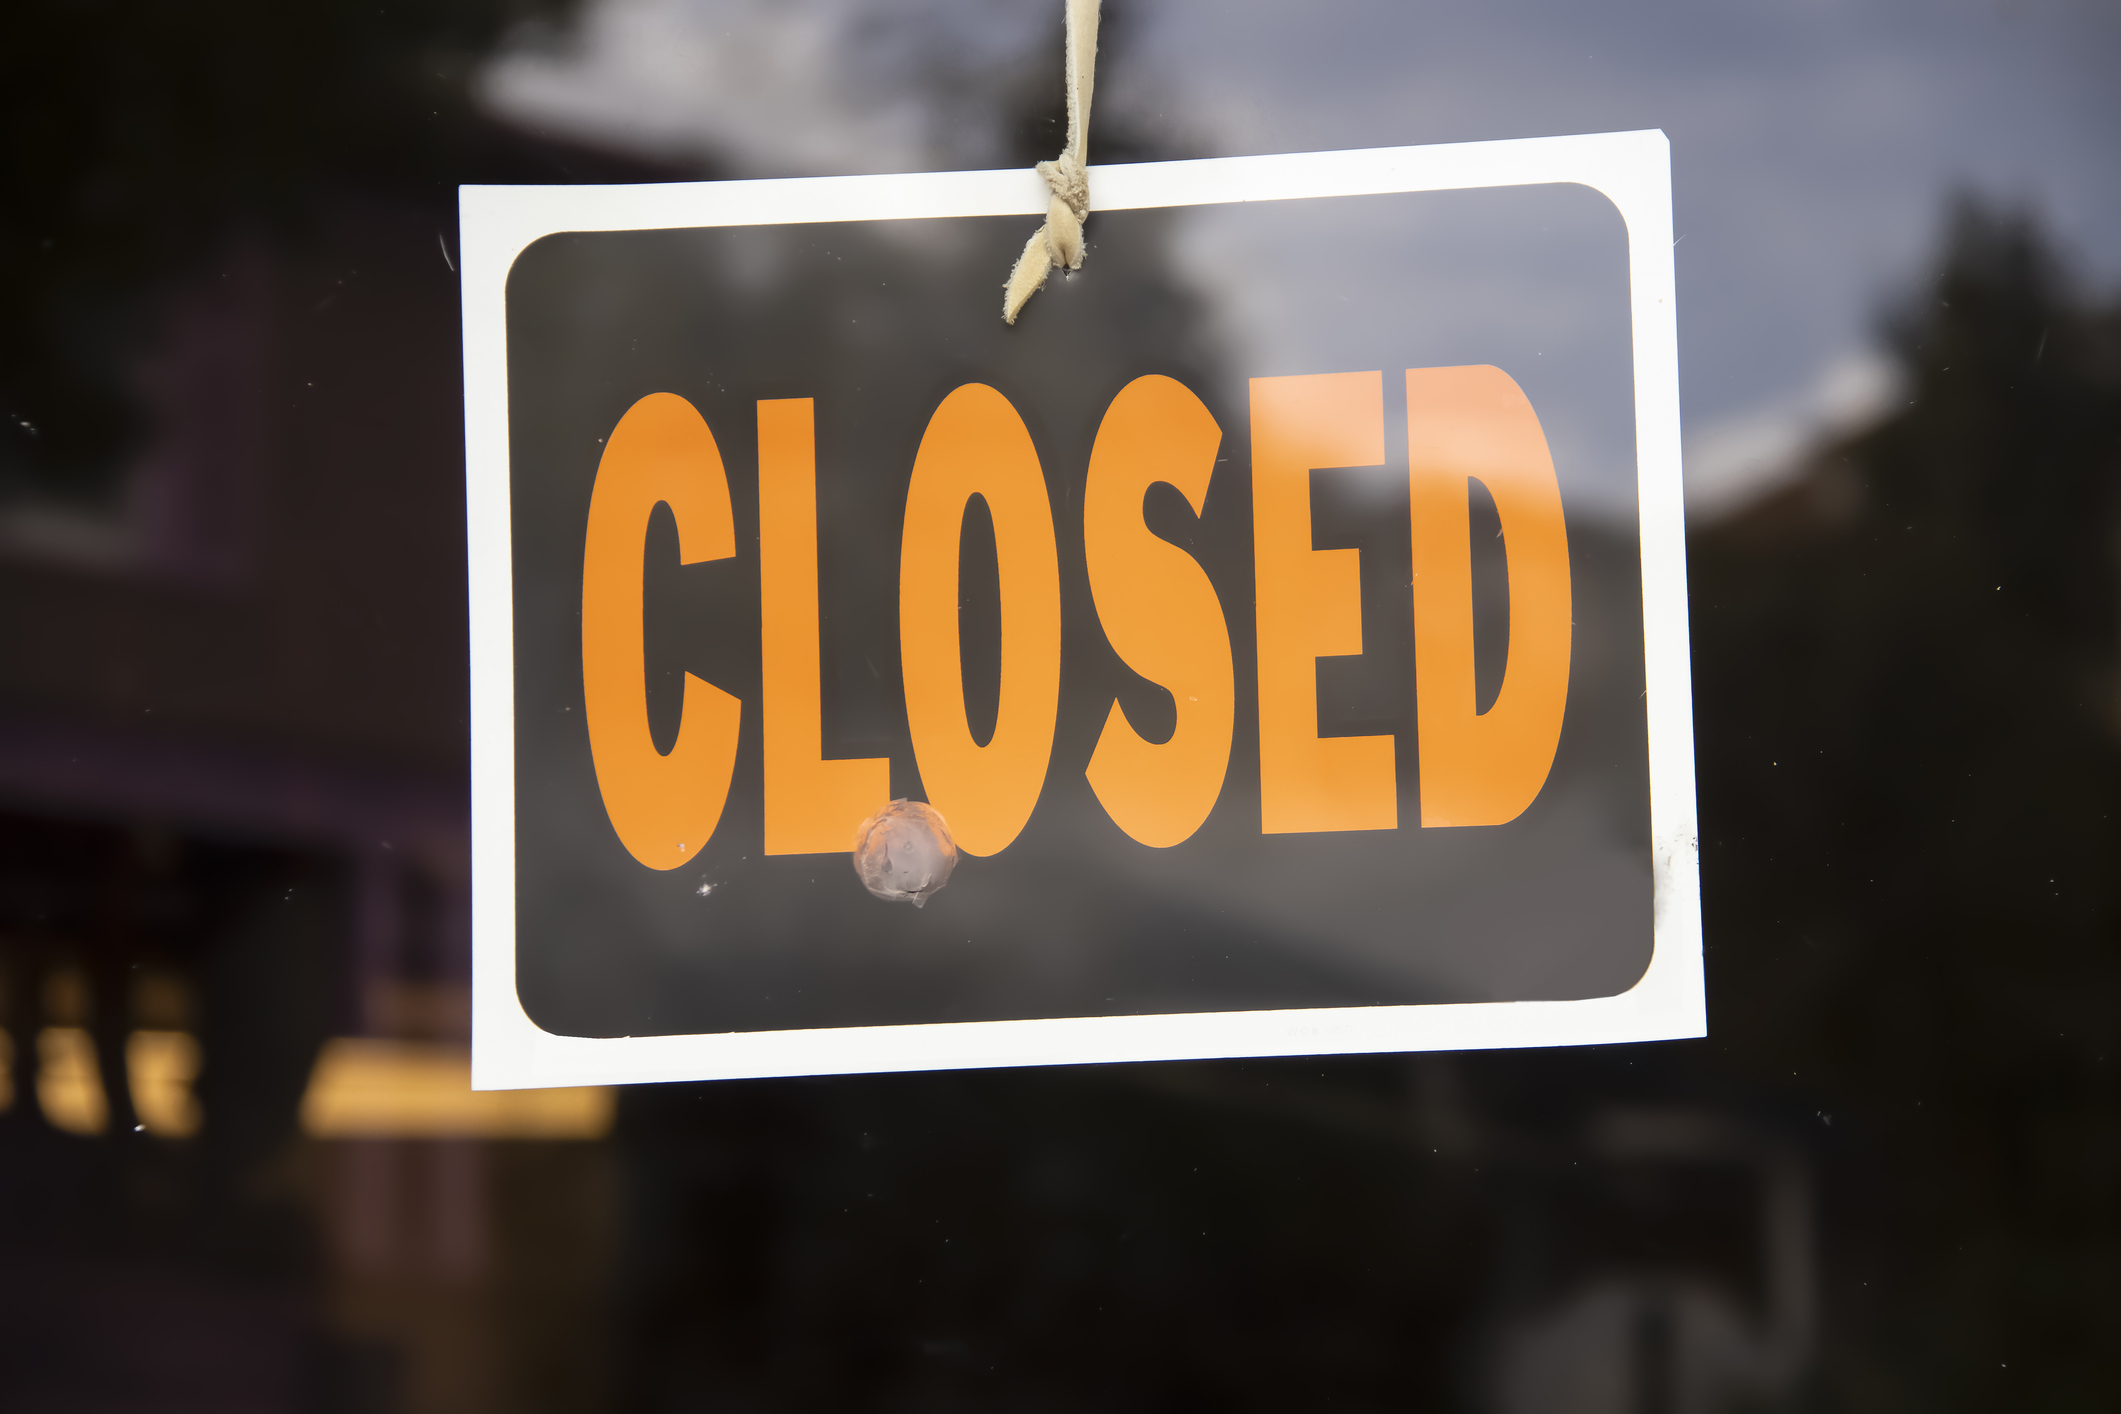 Closed sign hanging on a door